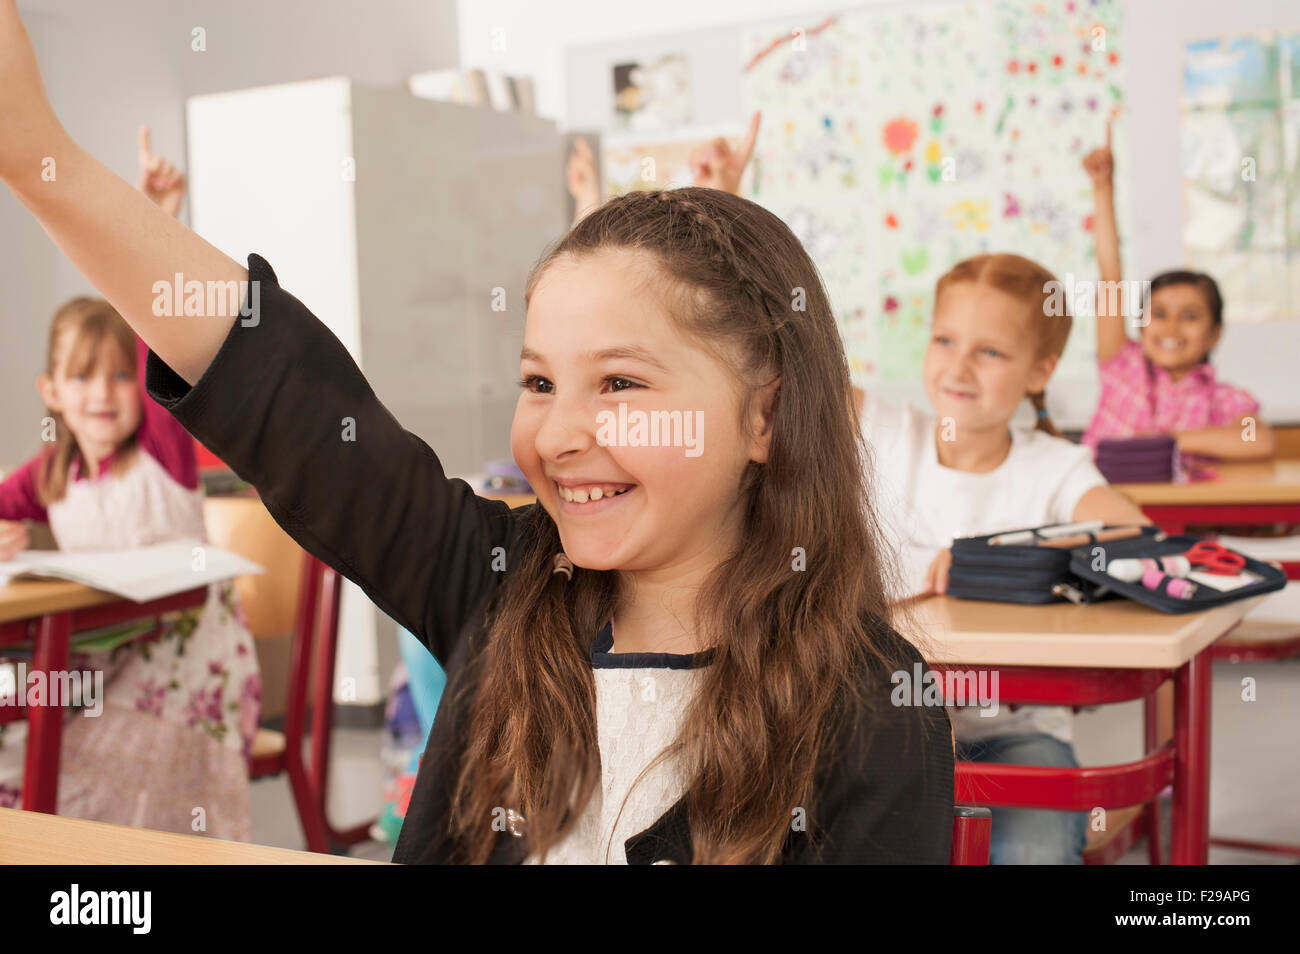 School children with raised hands in classroom, Munich, Bavaria, Germany - Stock Image